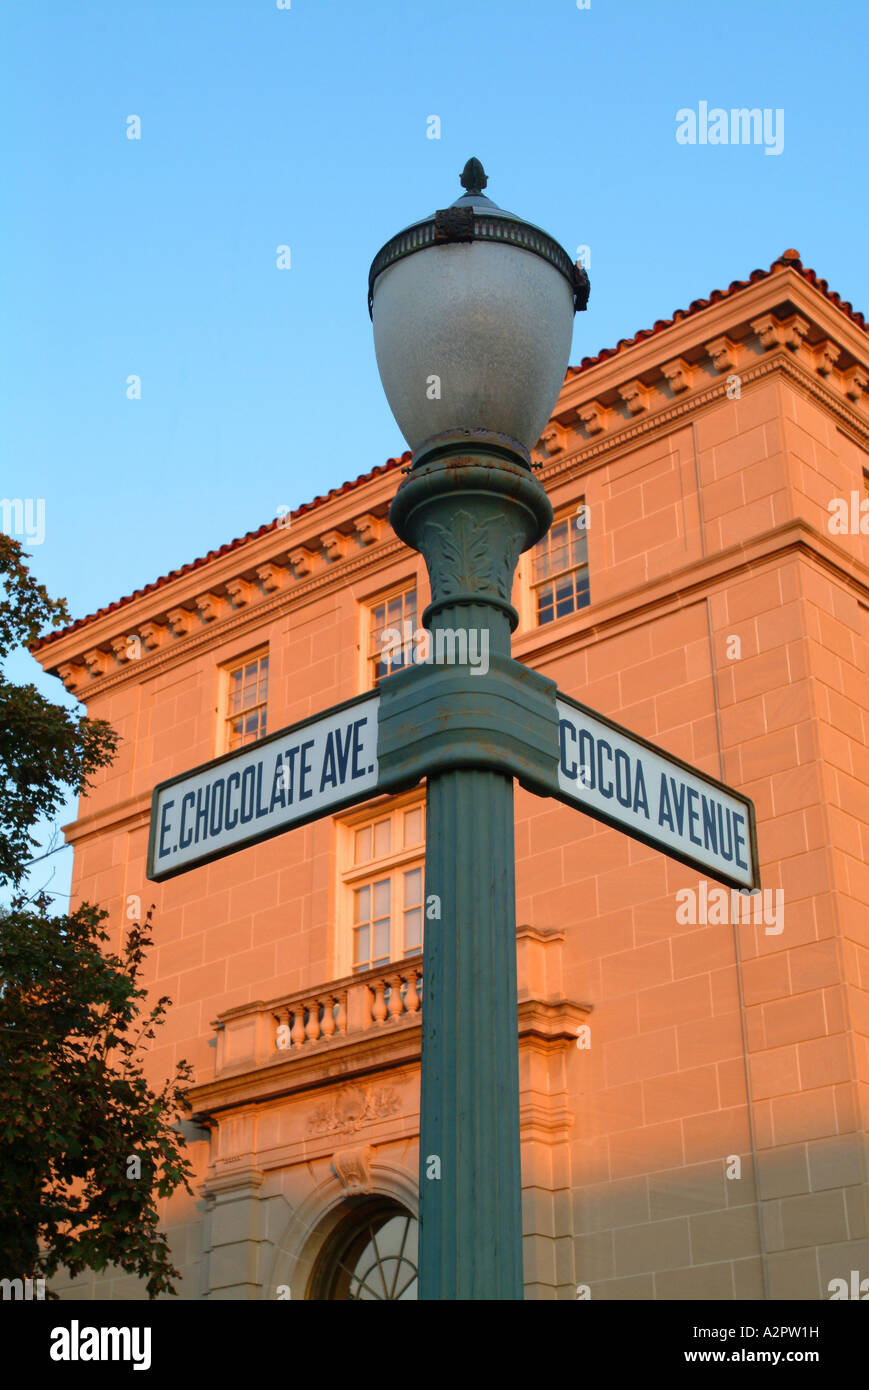 Downtown Hershey has streets named for the city s products such as Chocolate Avenue and Cocoa Avenue Stock Photo